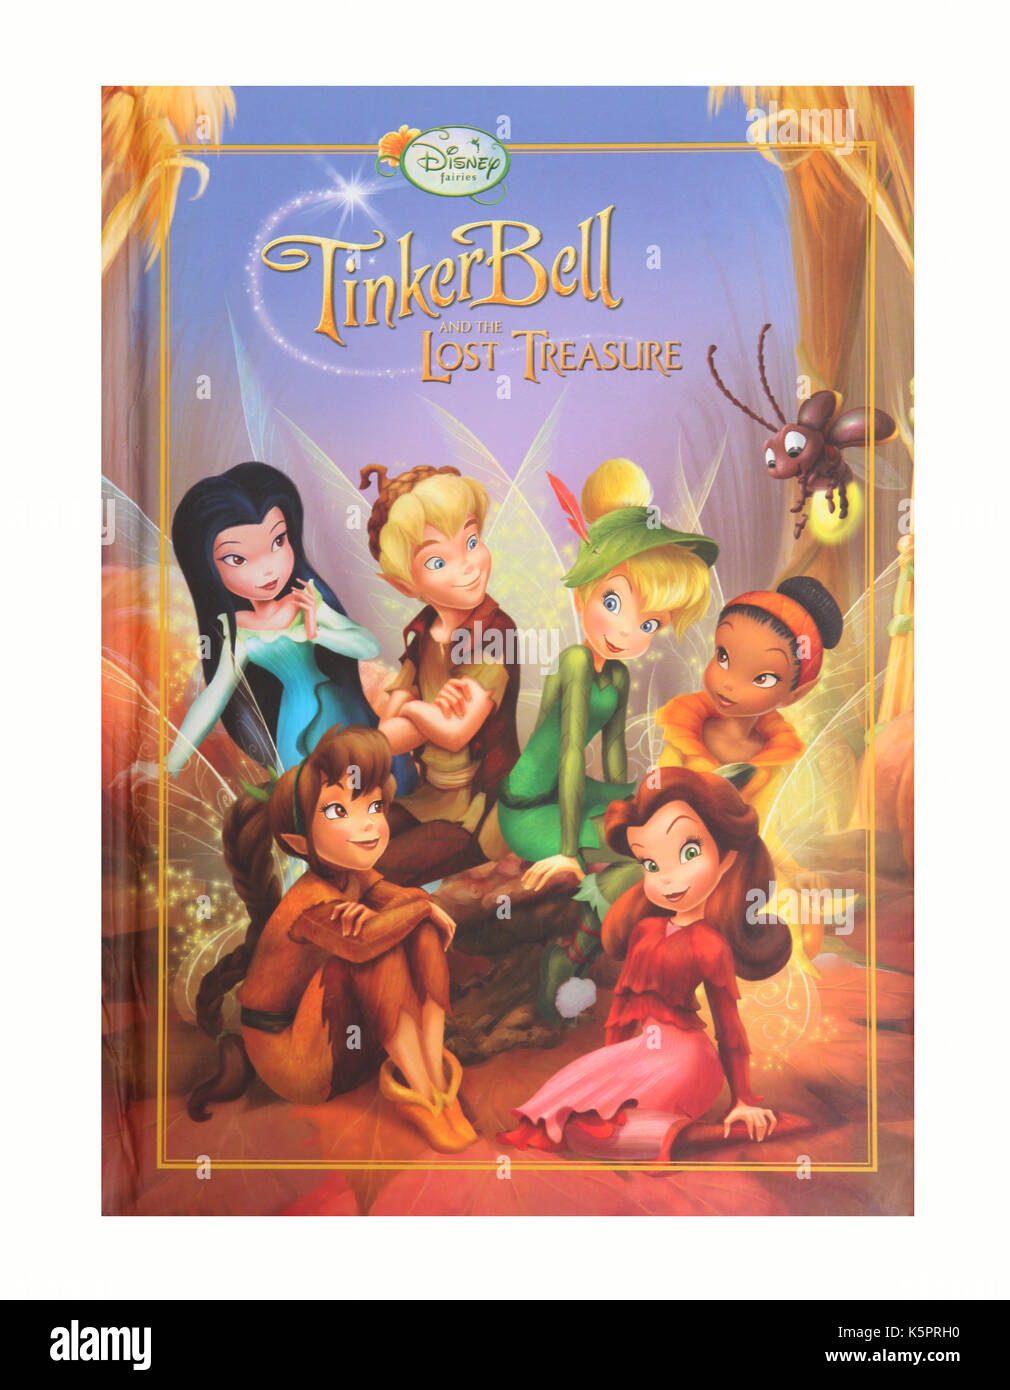 The children's book, Tinker Bell and the Lost Treasure by Disney - Stock Image